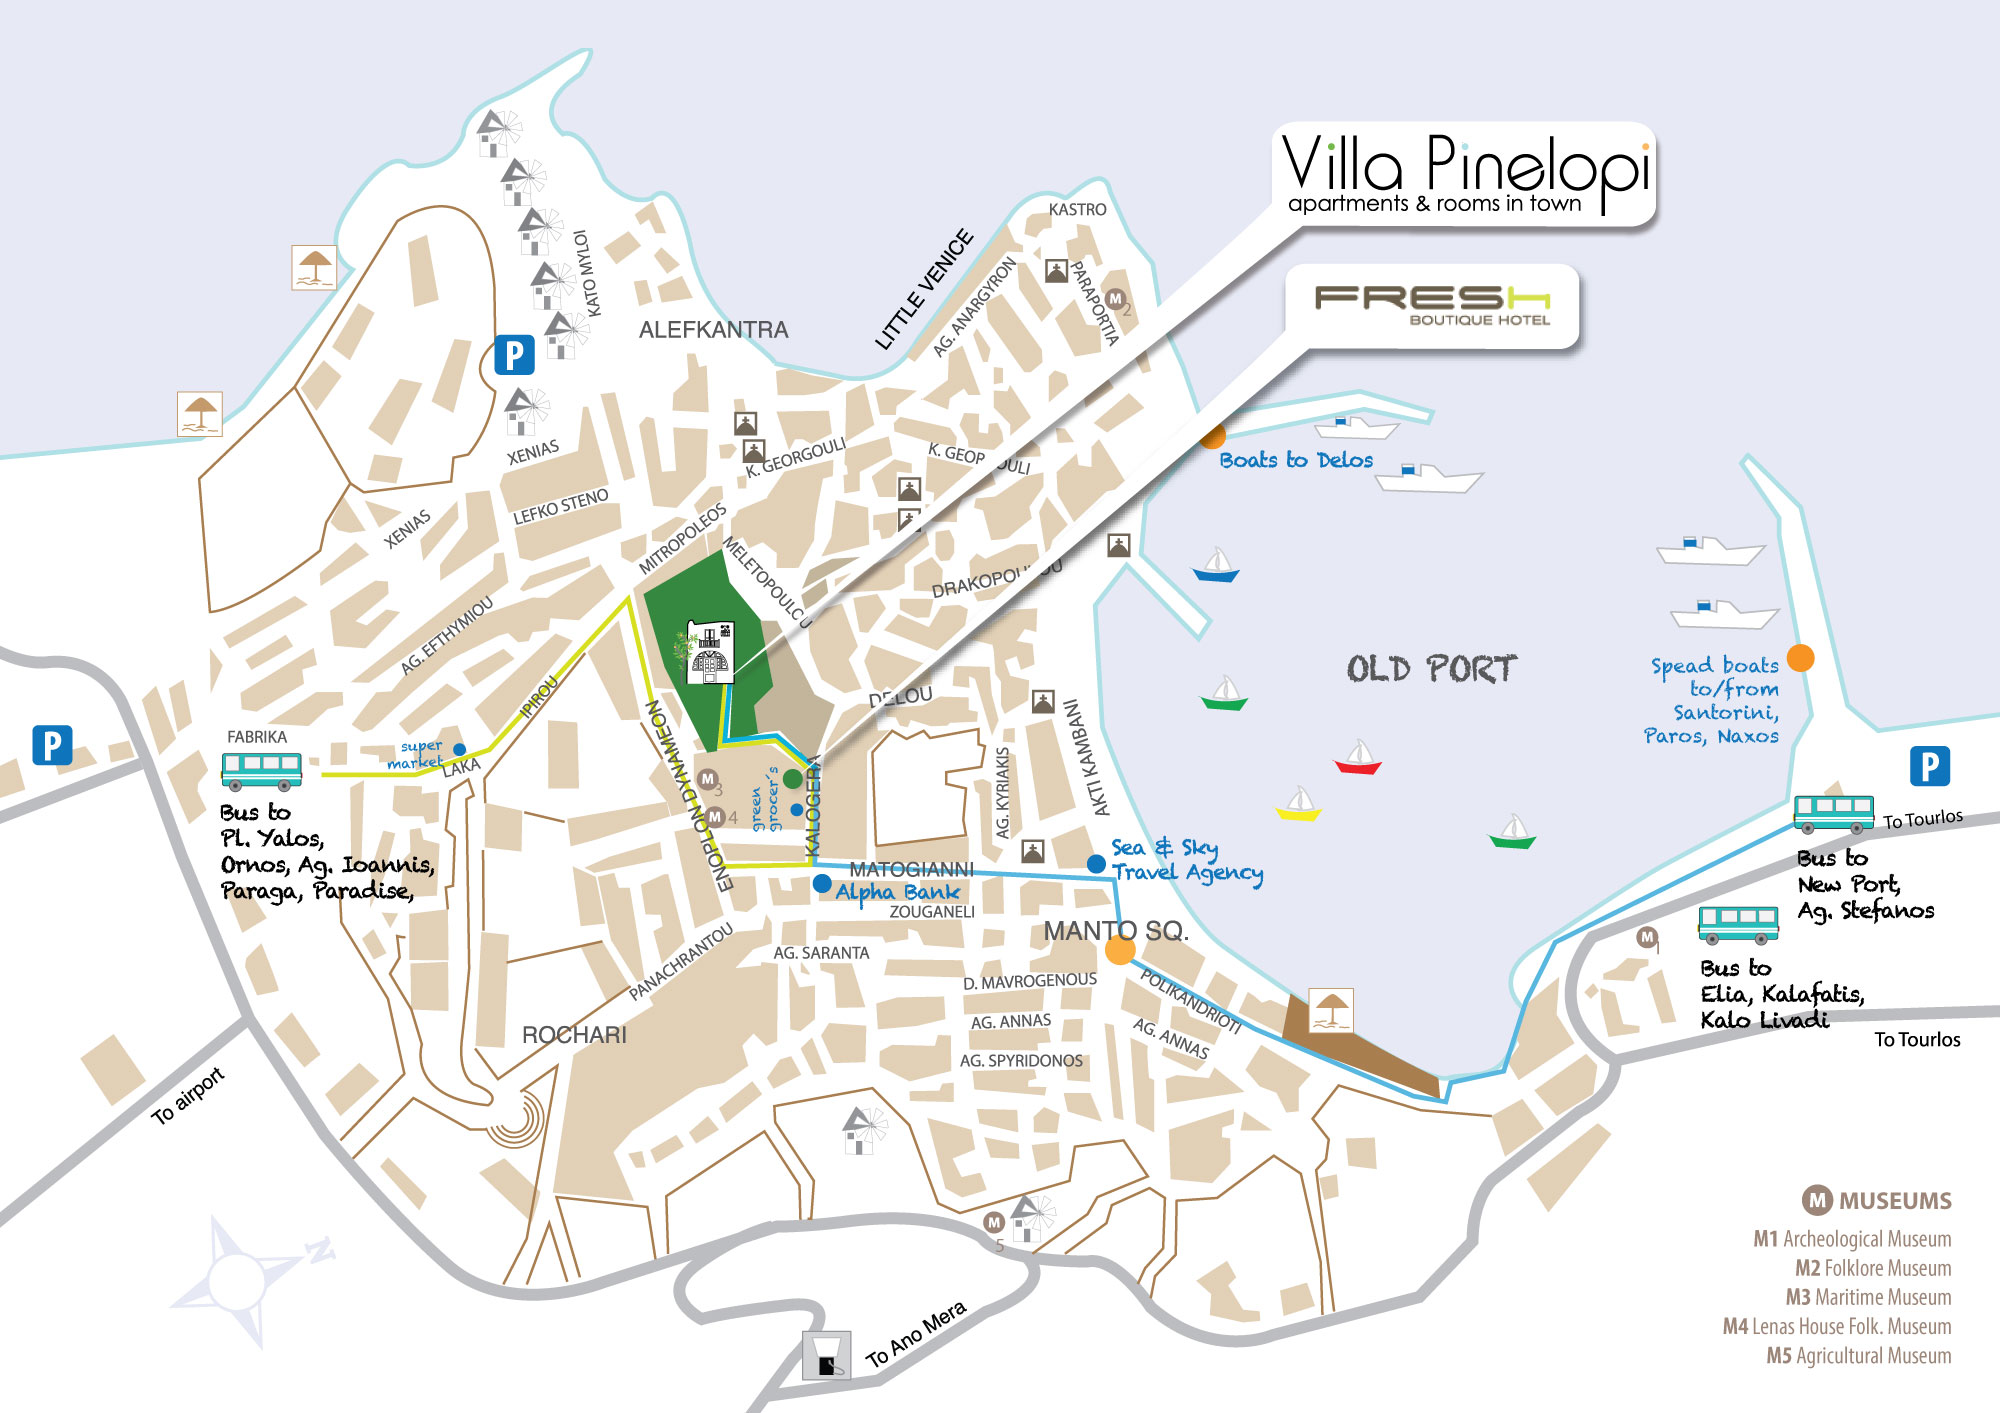 Mykonos Map - How to get to Villa Pinelopi